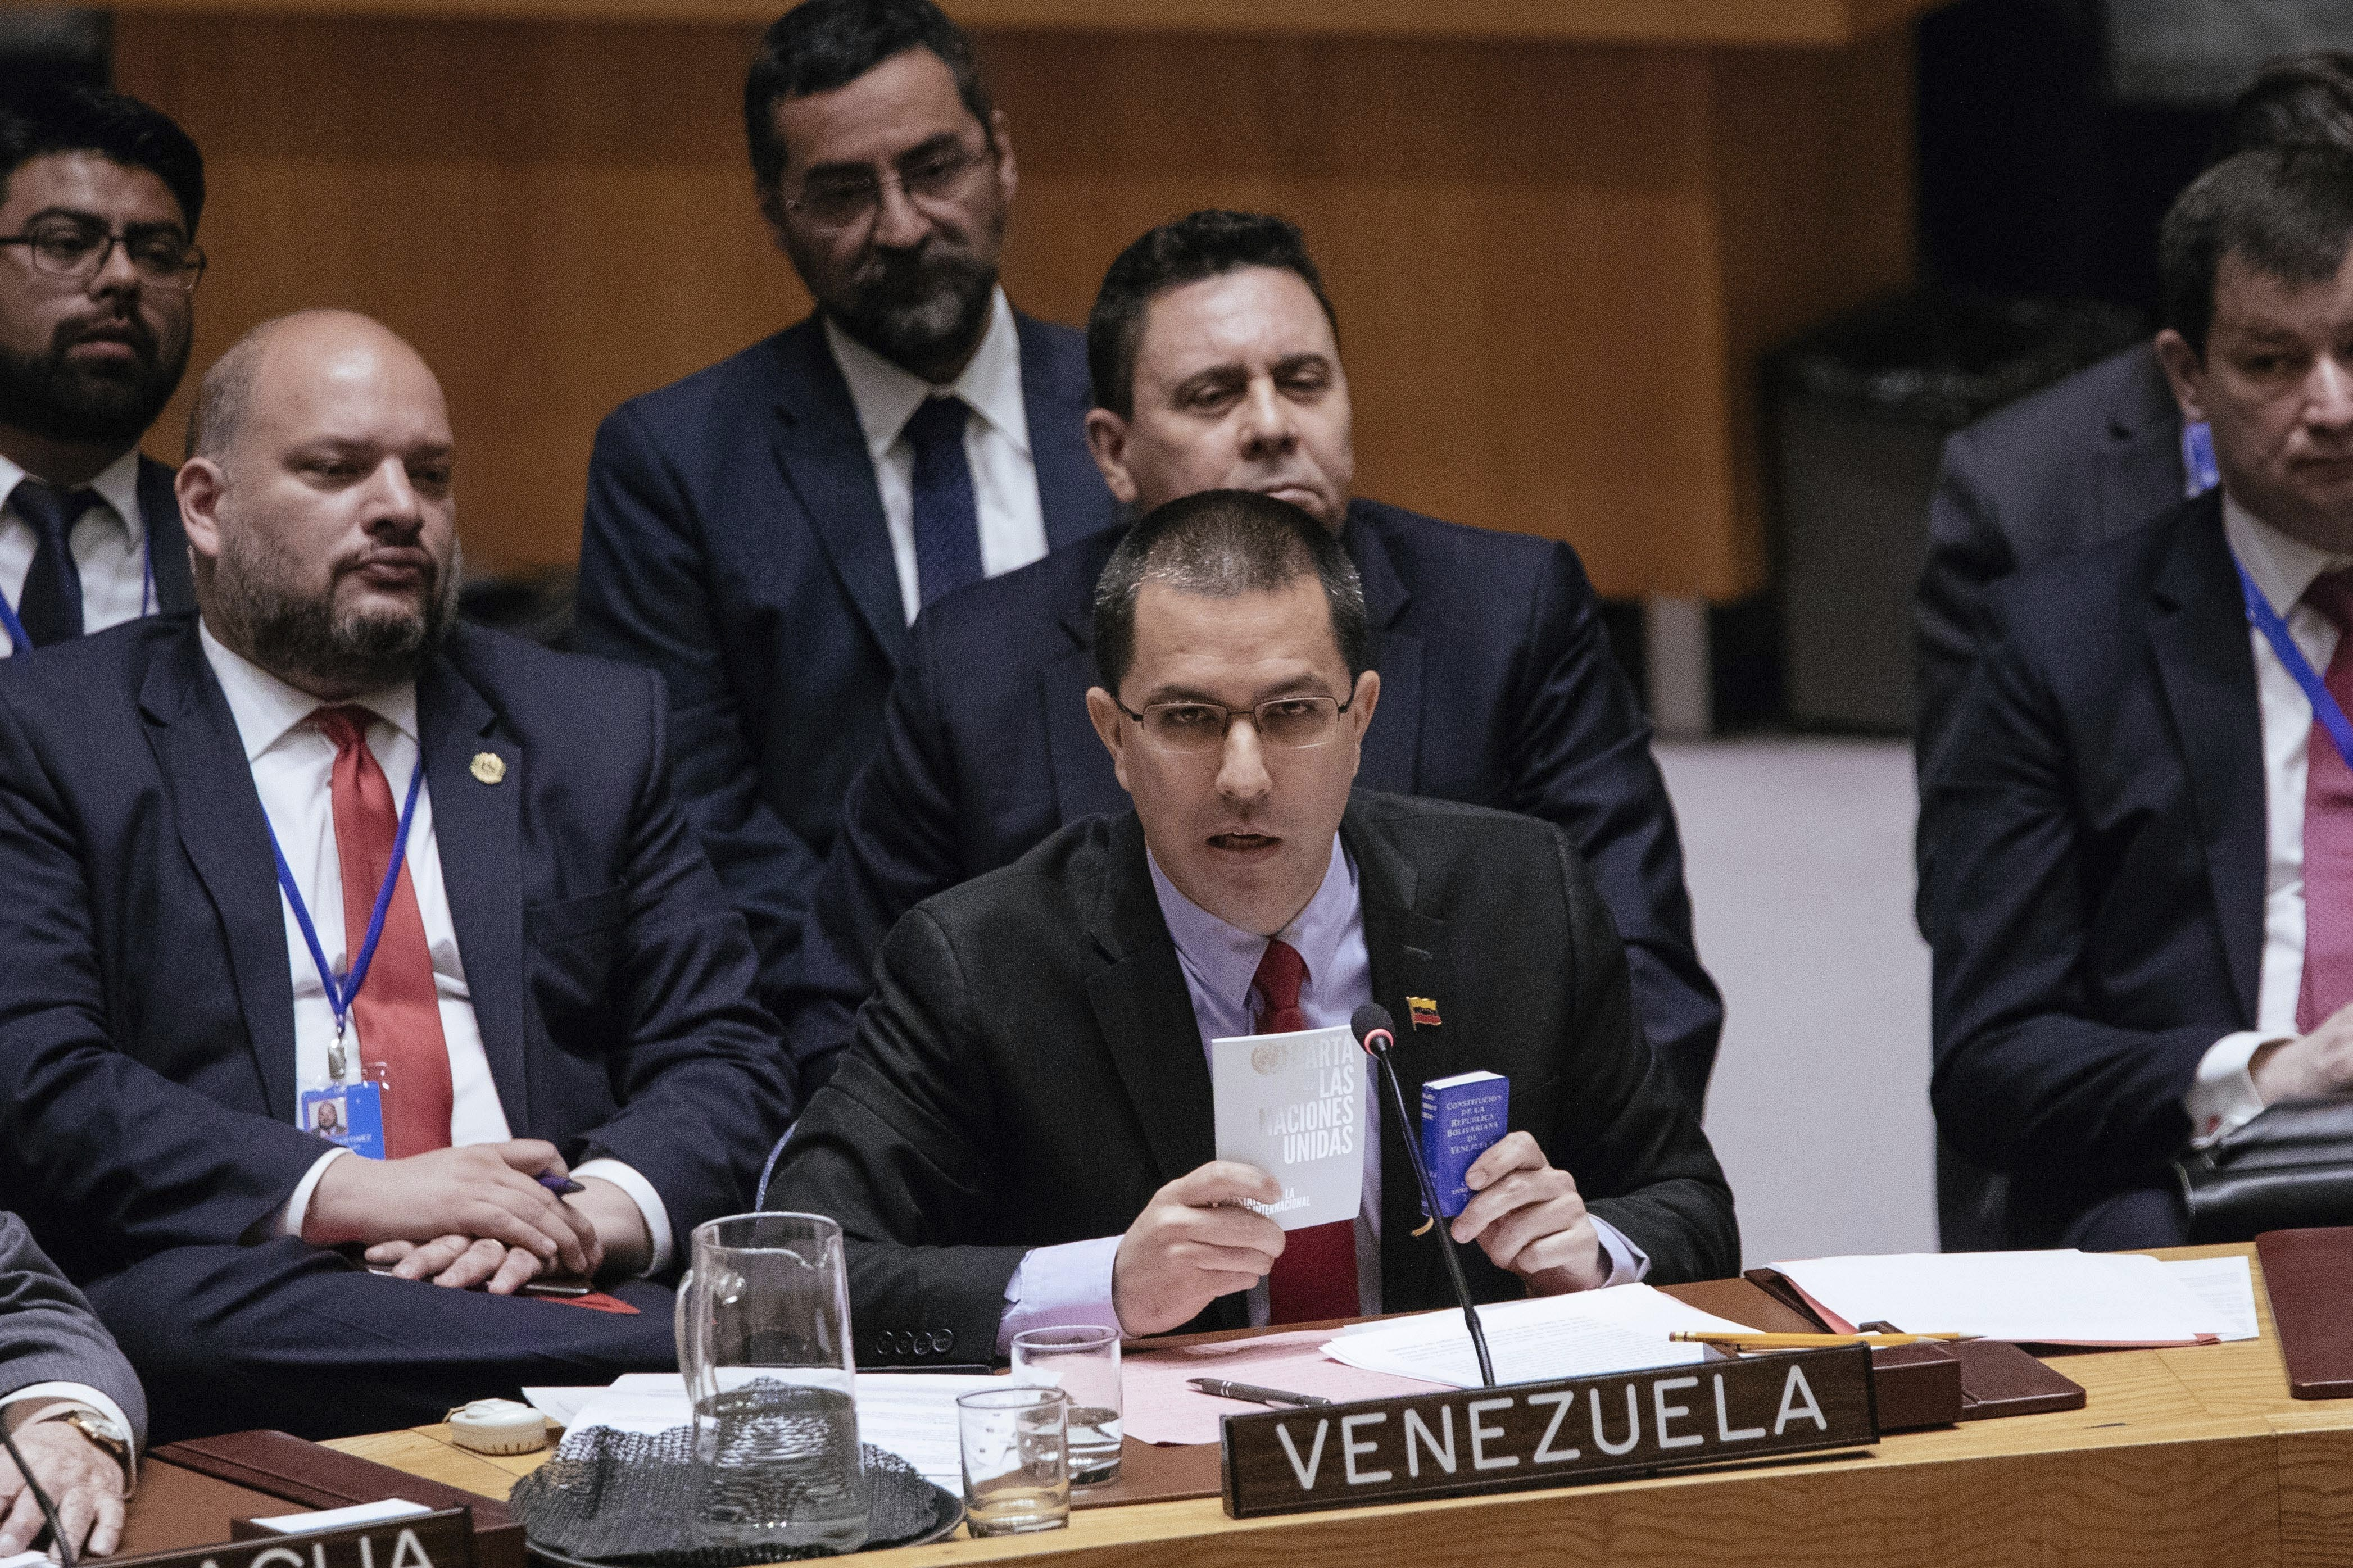 Venezuela's Minister of Foreign Affairs Jorge Arreaza speaks during the United Nations Security Council at the U.N., Jan. 26, 2019, in New York. During the meeting, U.S. Secretary of State Mike Pompeo encouraged the council to recognize Juan Guaido a...